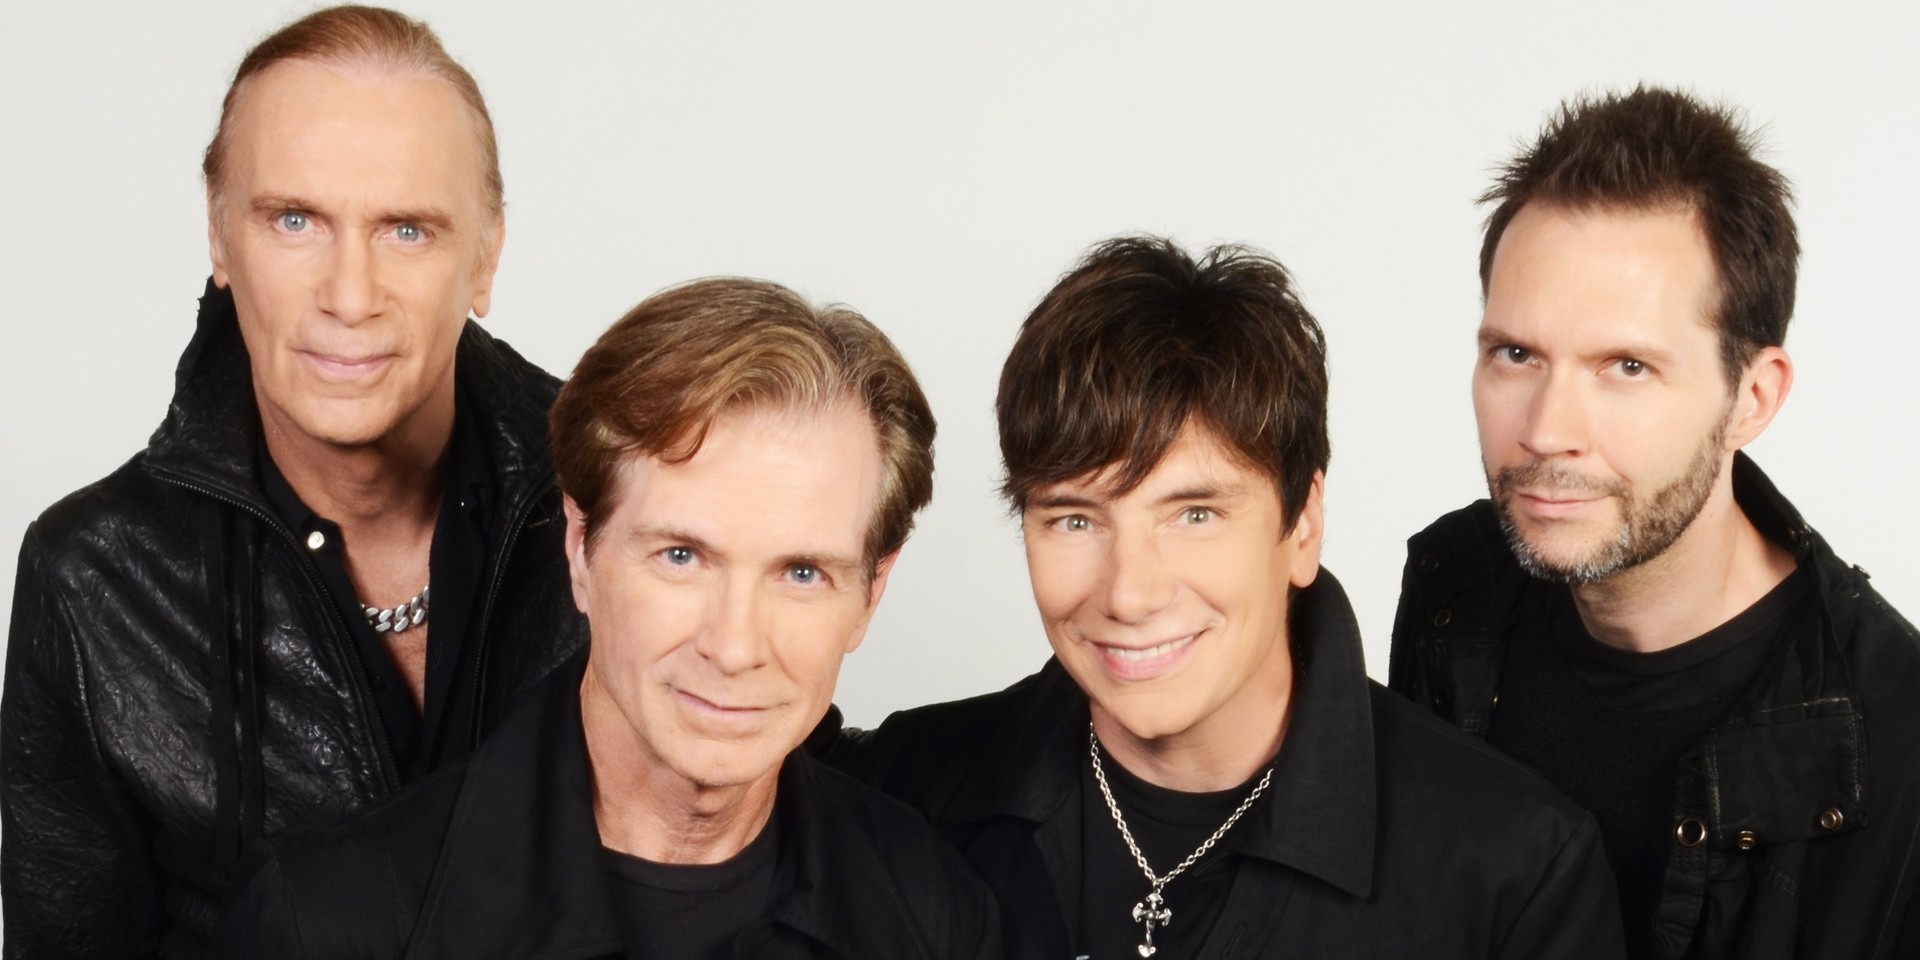 Mr. Big's Pat Torpey on being a drummer and battling Parkinson's